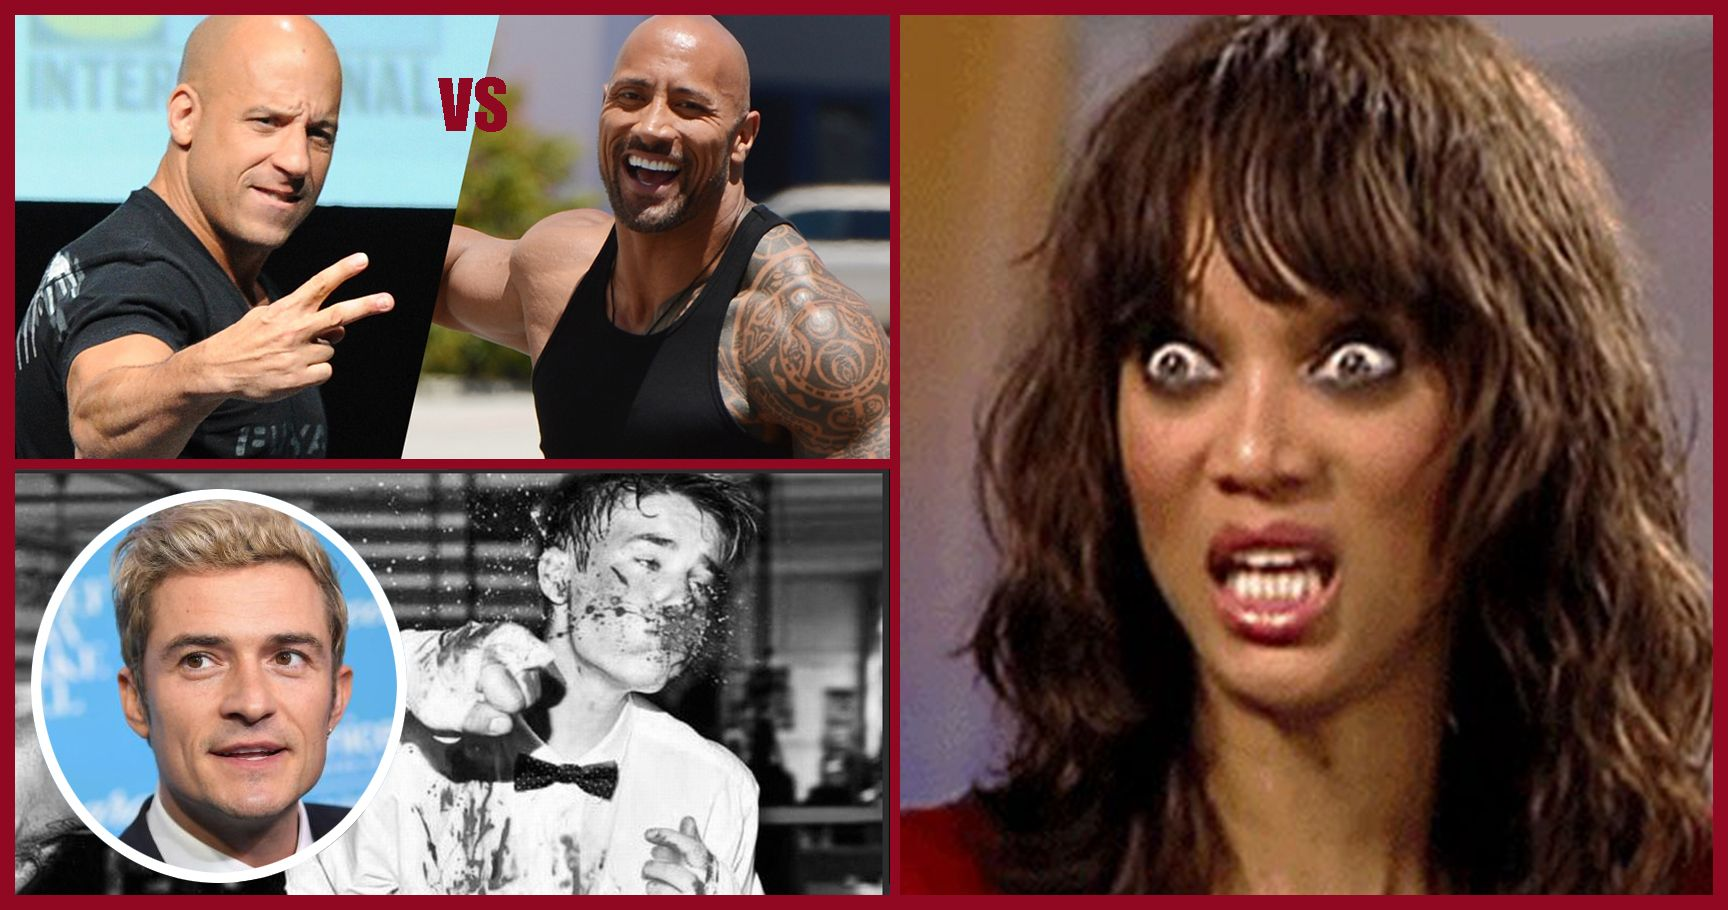 15 Dramatic Celebrity Feuds You Never Knew About